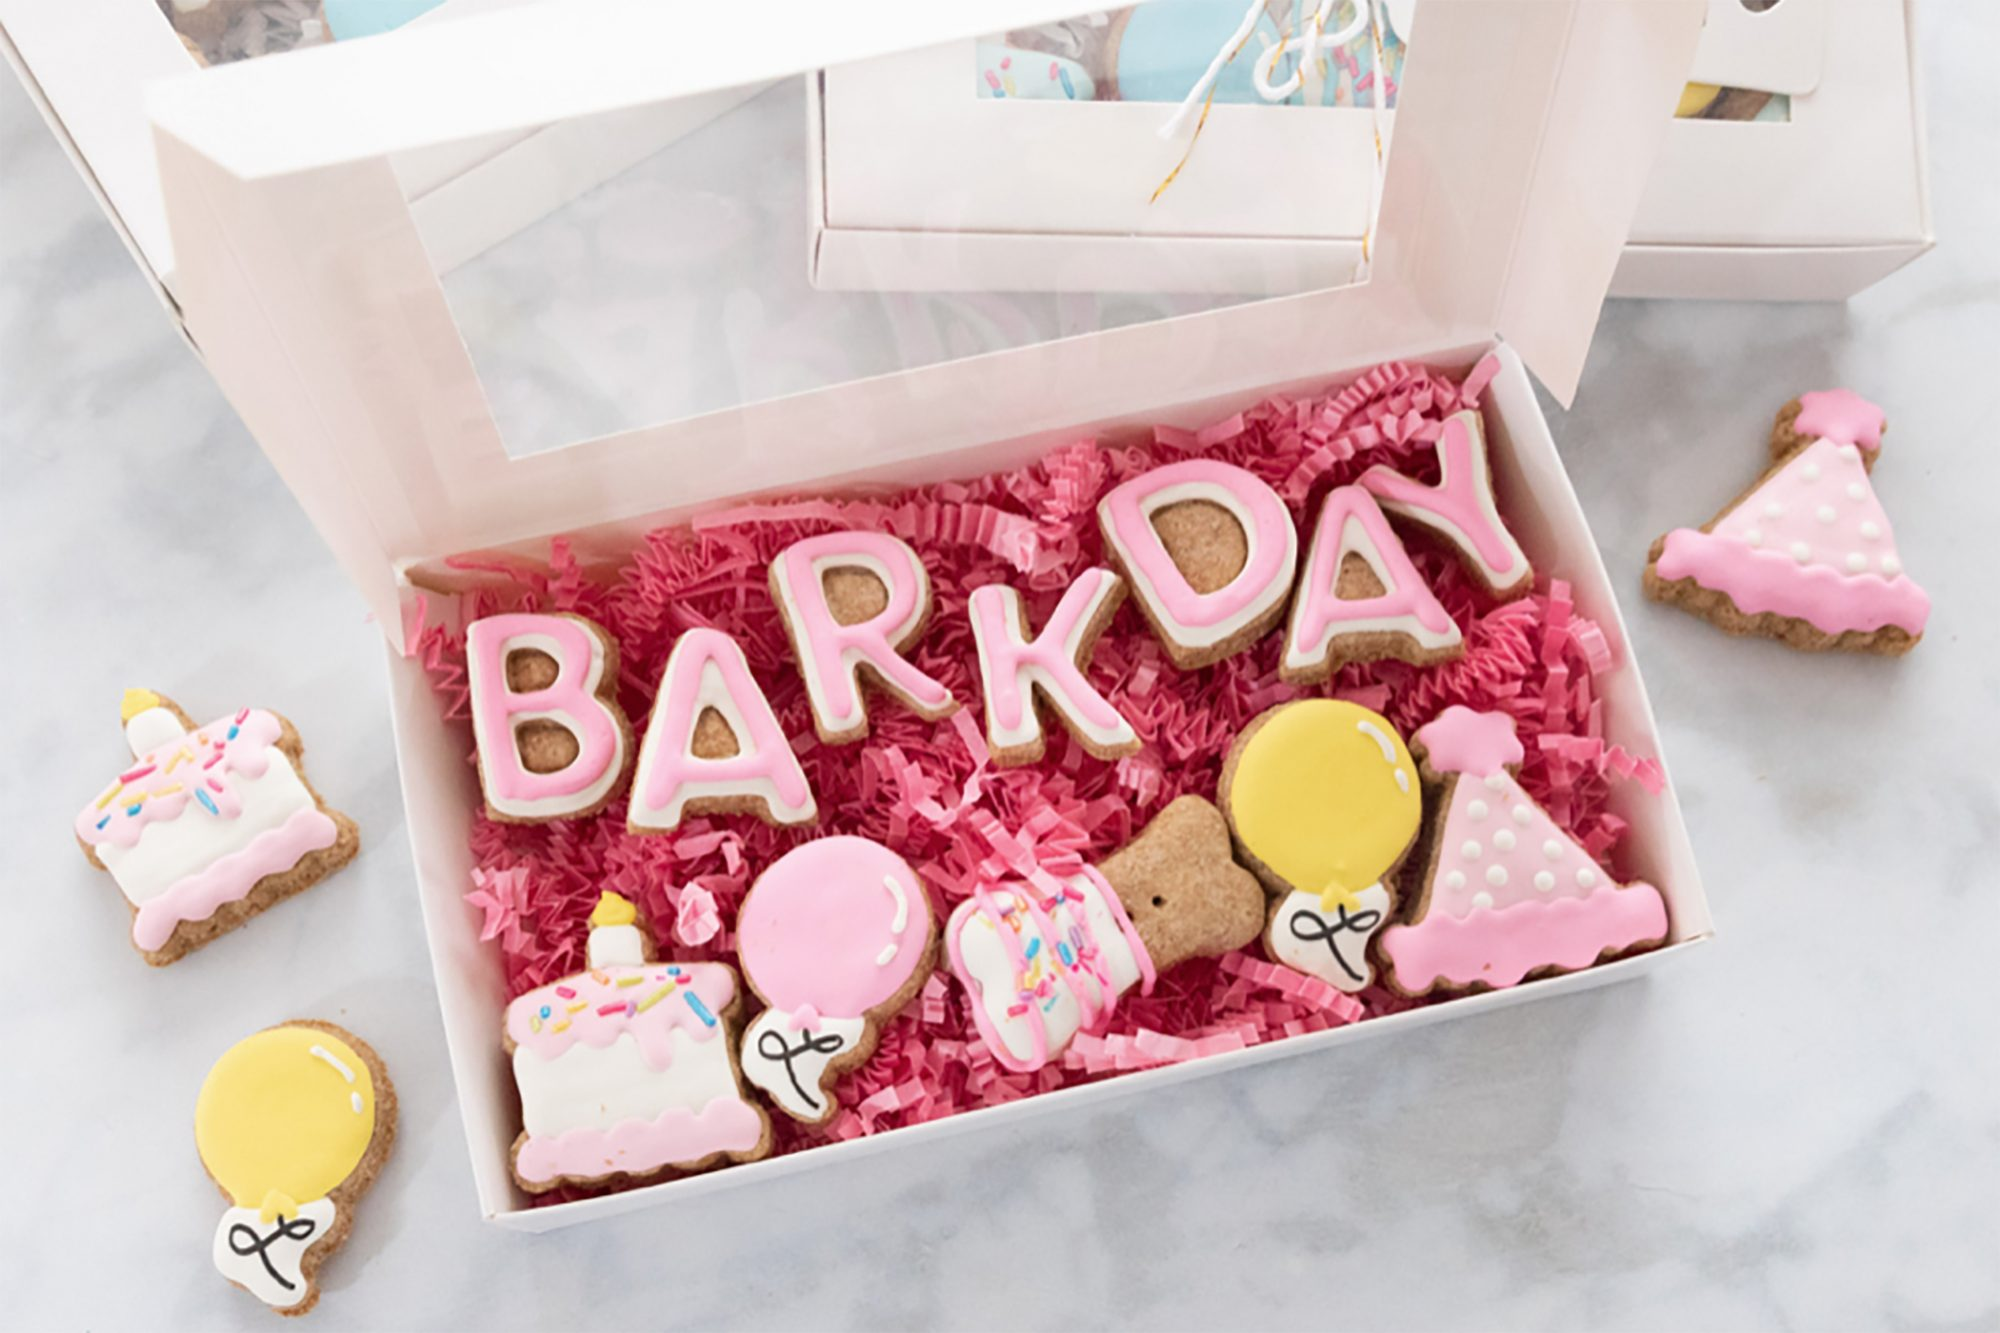 Picture of Barkday treats box with cake and balloon and birthday hat dog treats